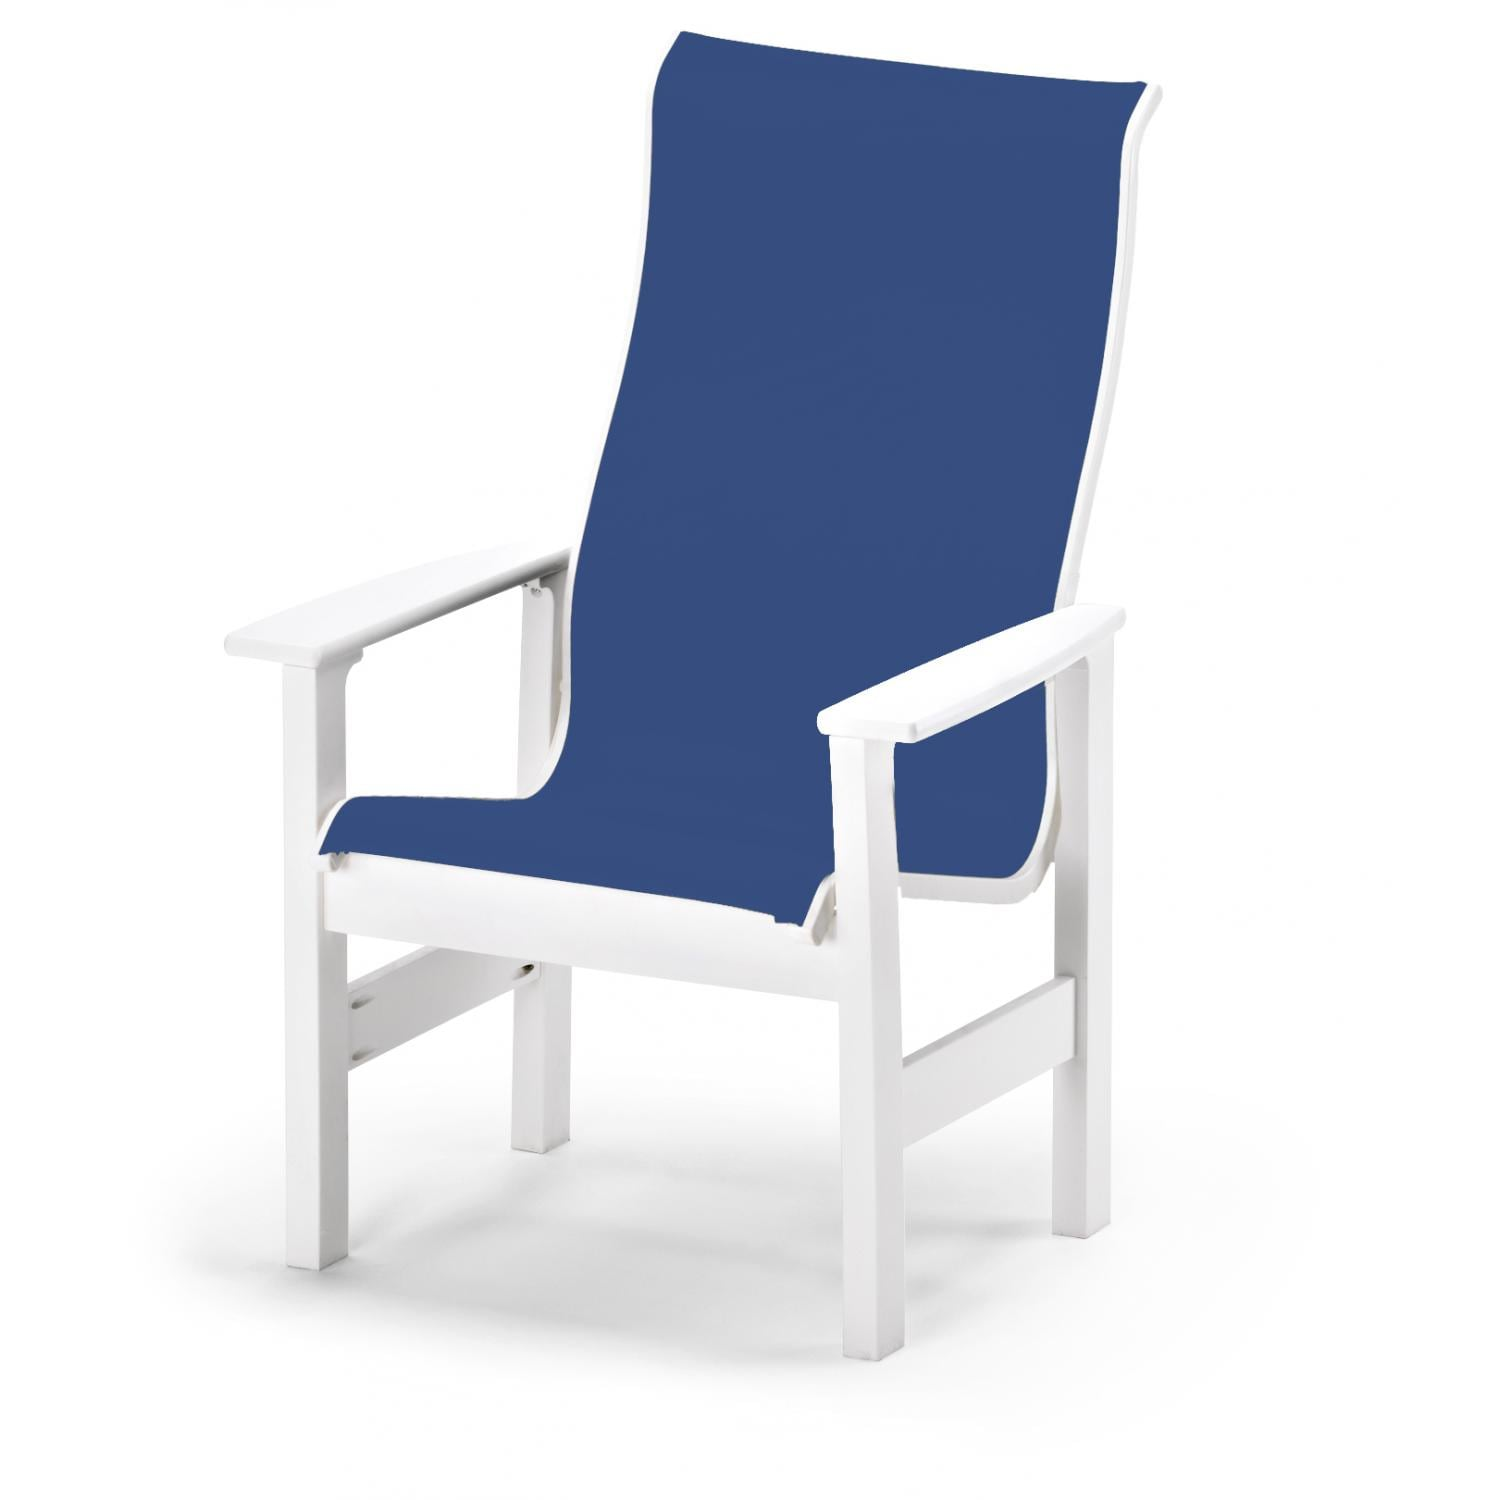 Ordinaire Leeward Supreme MGP Patio Dining Arm Chair With Sling Seating By Telescope  Casual   Textured Snow/Cobalt